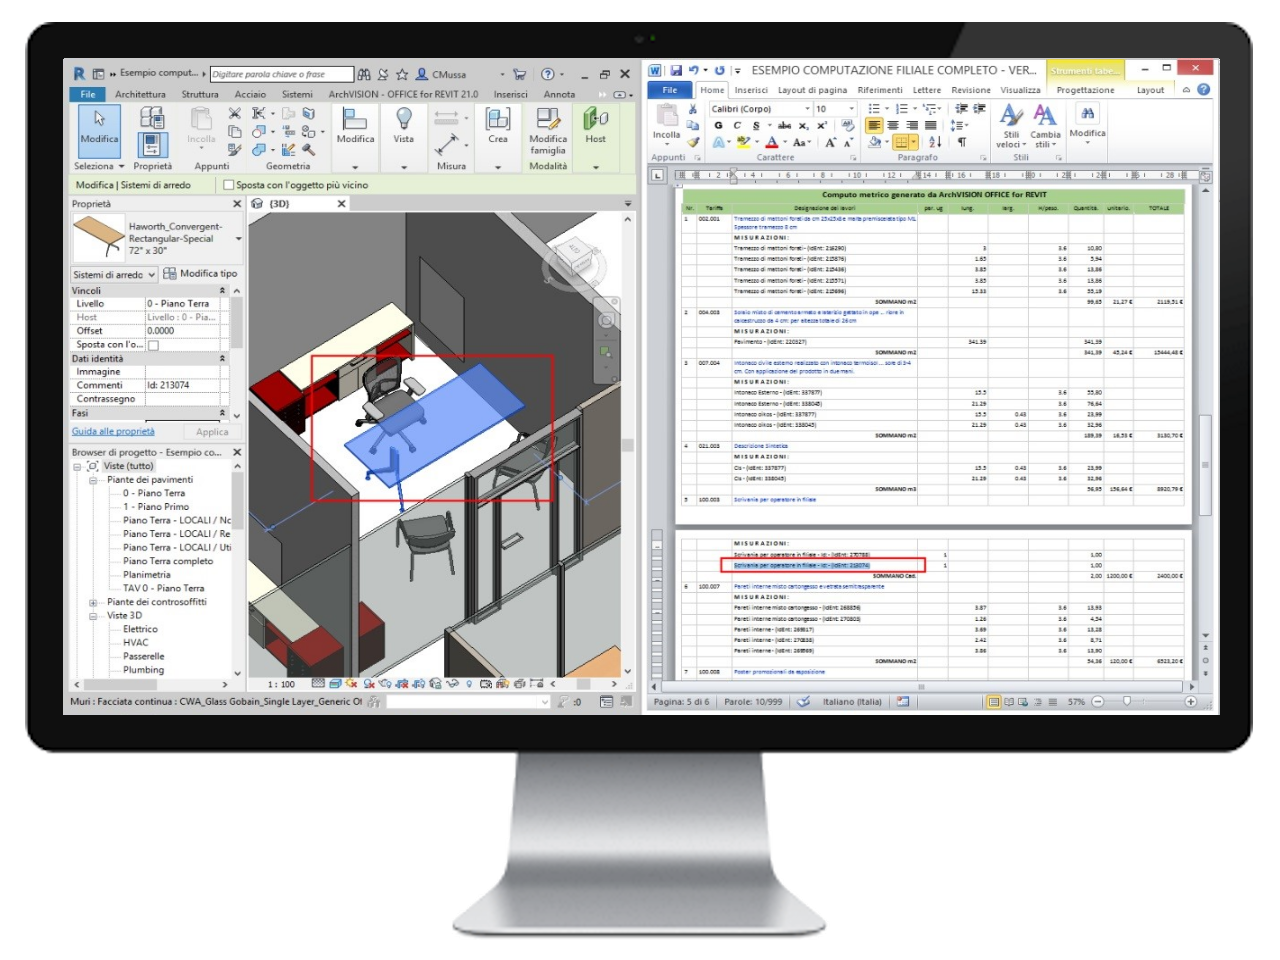 ArchVISION OFFICE for REVIT - Revit Find de Word